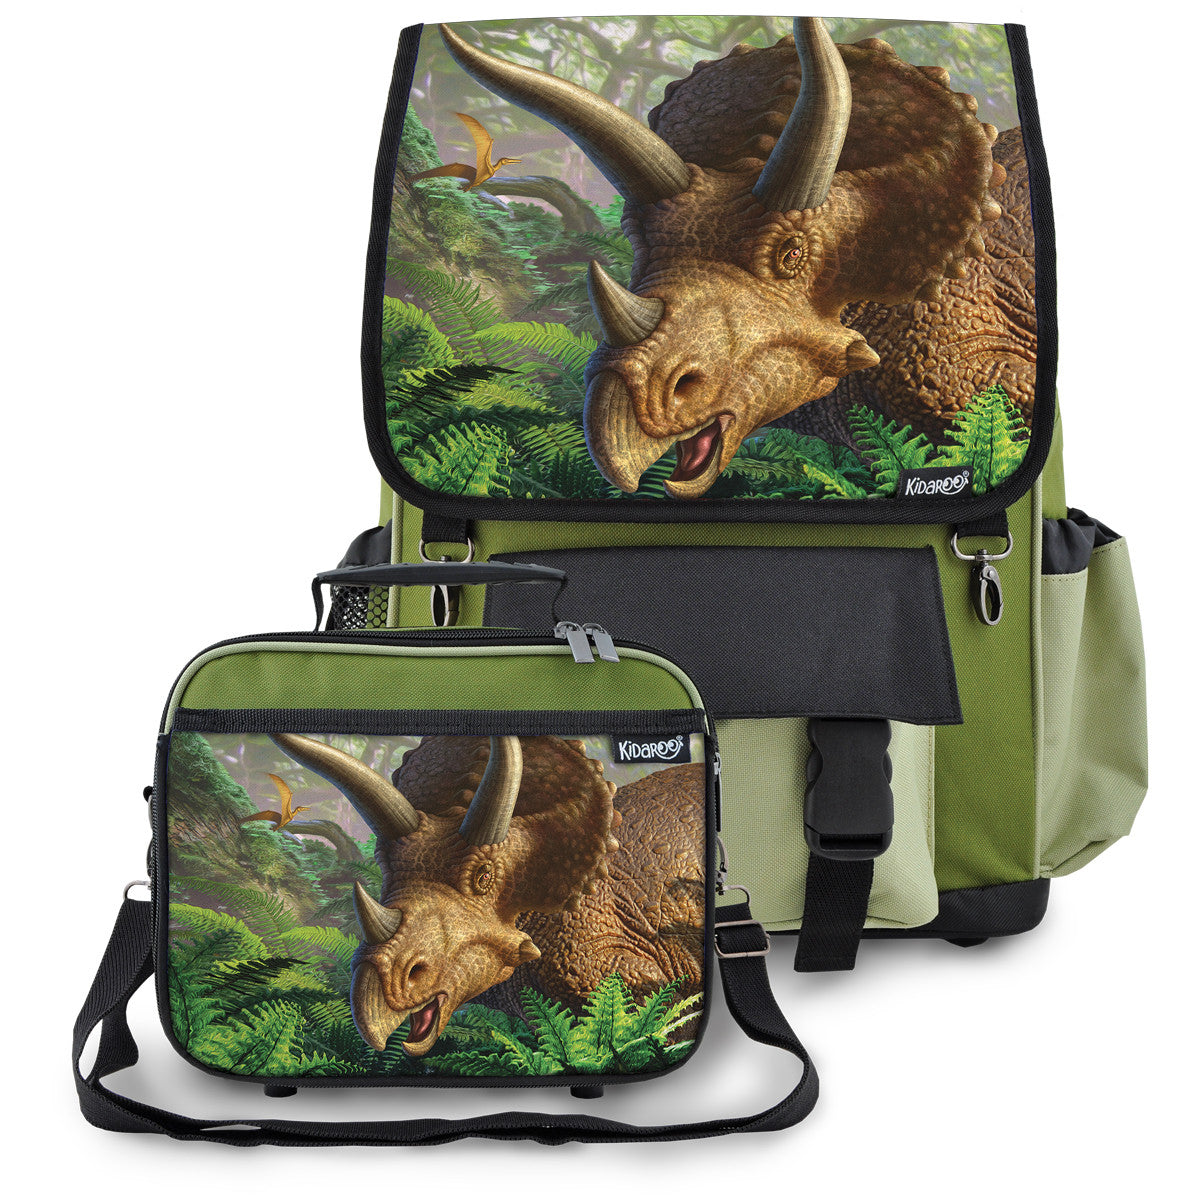 Kidaroo Khaki Green Triceratops Dinosaur School Backpack & Lunchbox Set for Boys, Girls, Kids